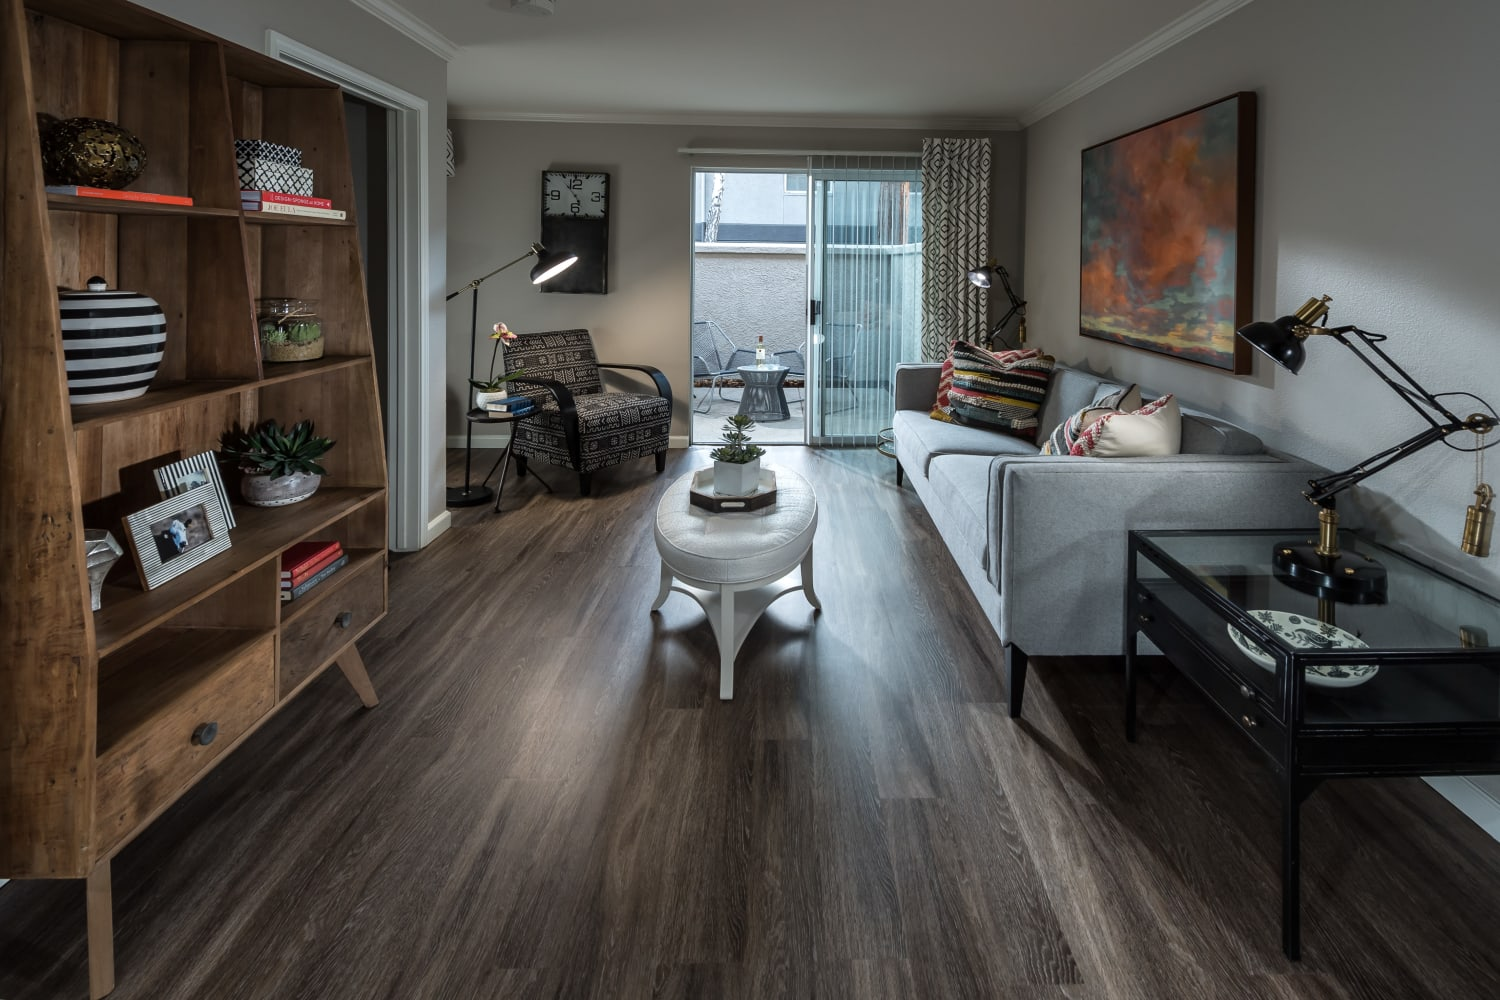 Modern living room with hardwood floors at Bella Vista Apartments in Santa Clara, California